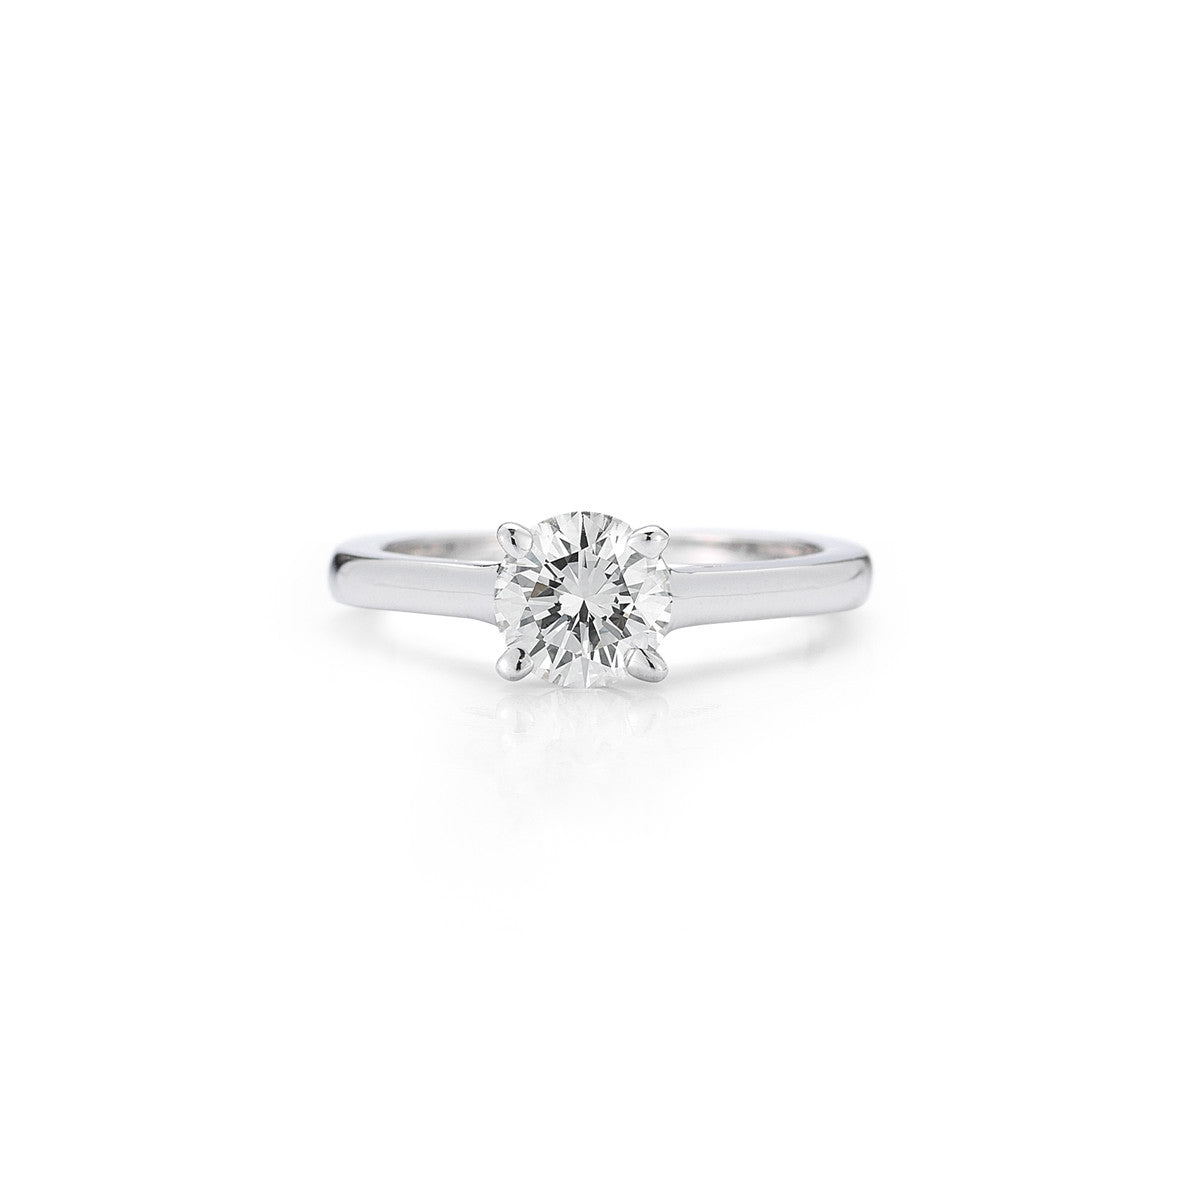 The Maharani Solitaire Engagement Ring